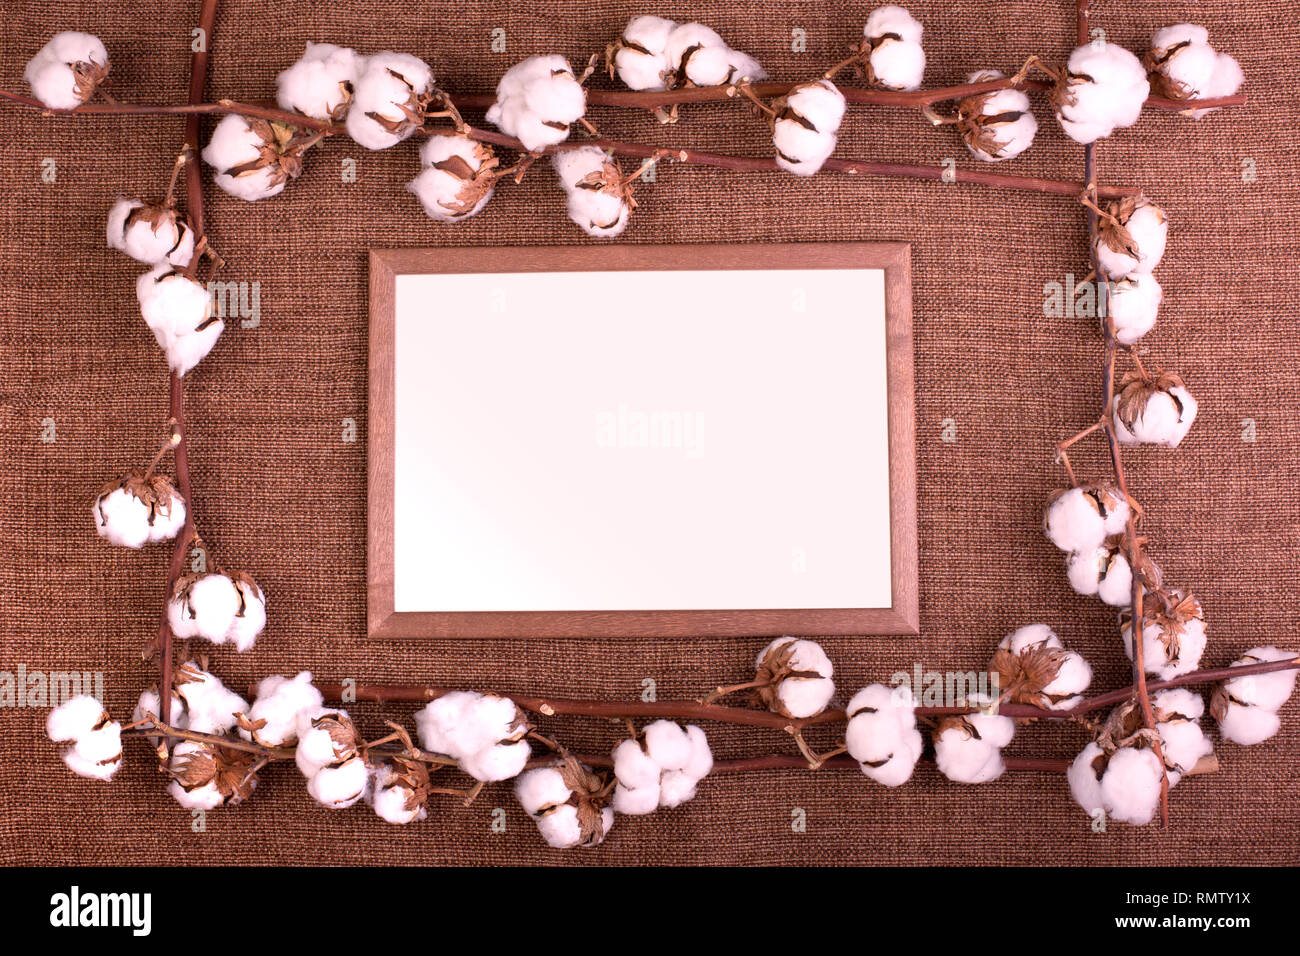 Frame with fluffy dried cotton bolls over rough brown burlap. Top view, copy space, greeting card - Stock Image